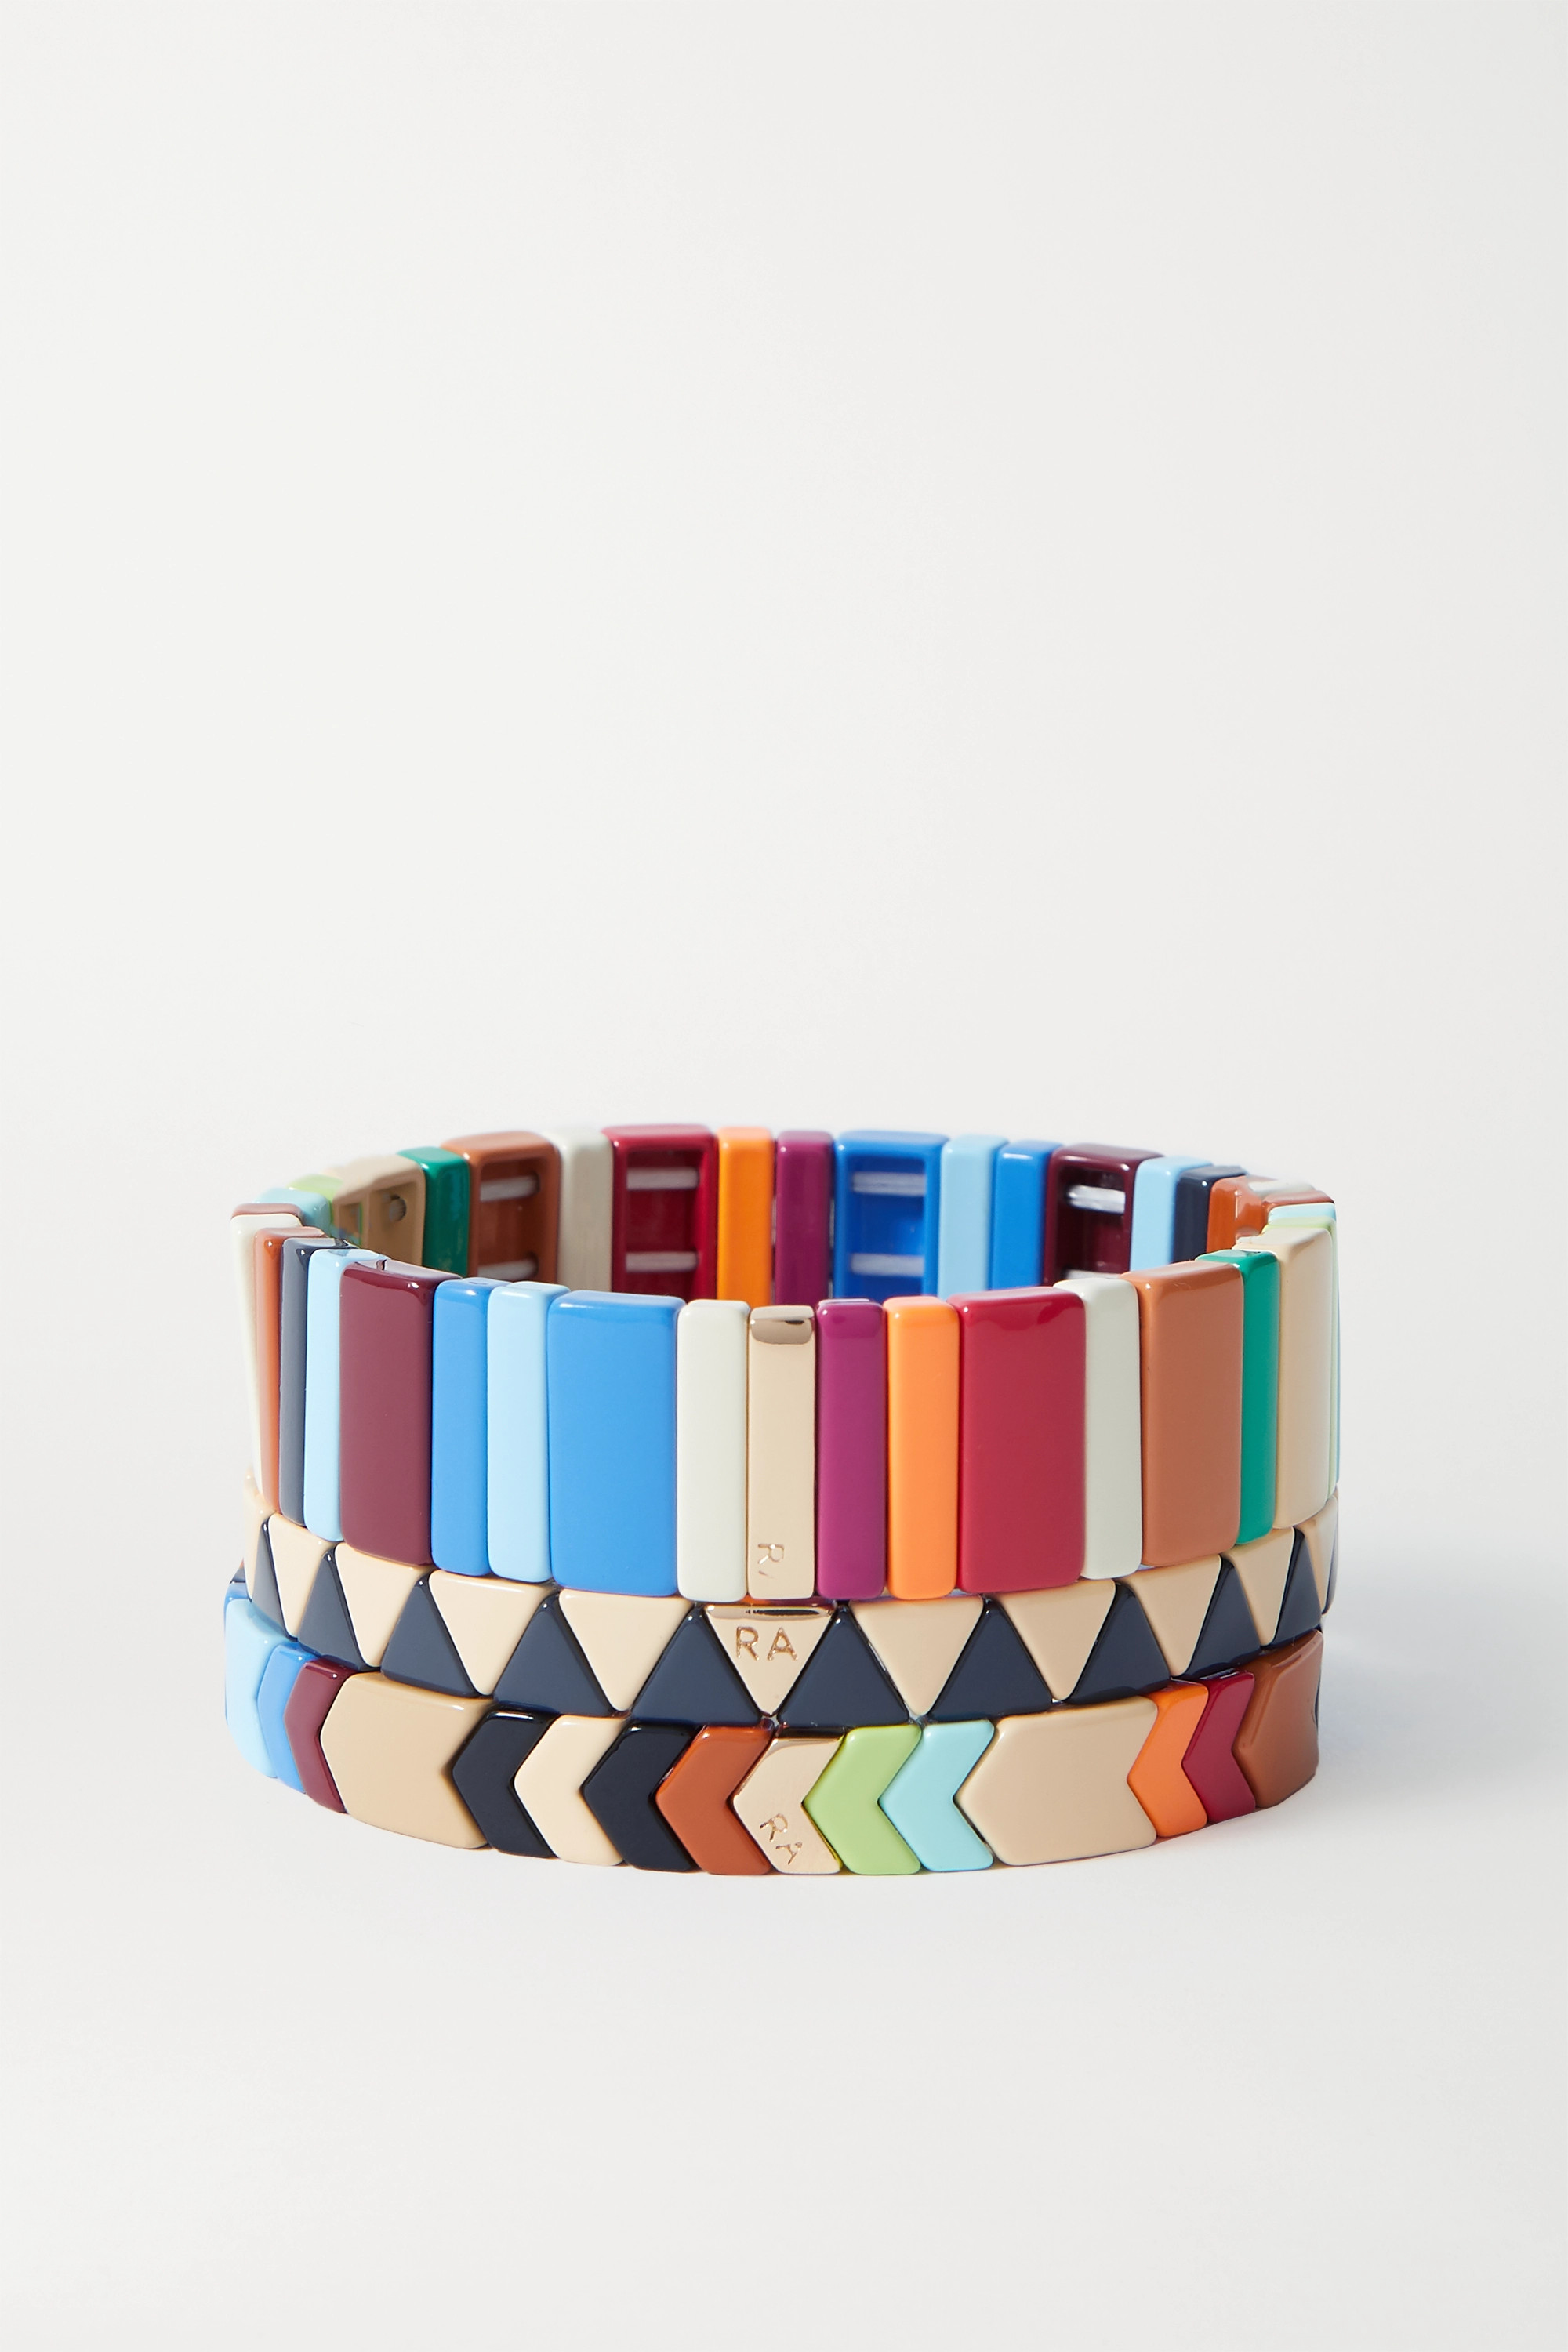 ROXANNE ASSOULIN Grounded Rainbow set of three enamel and gold-tone bracelets